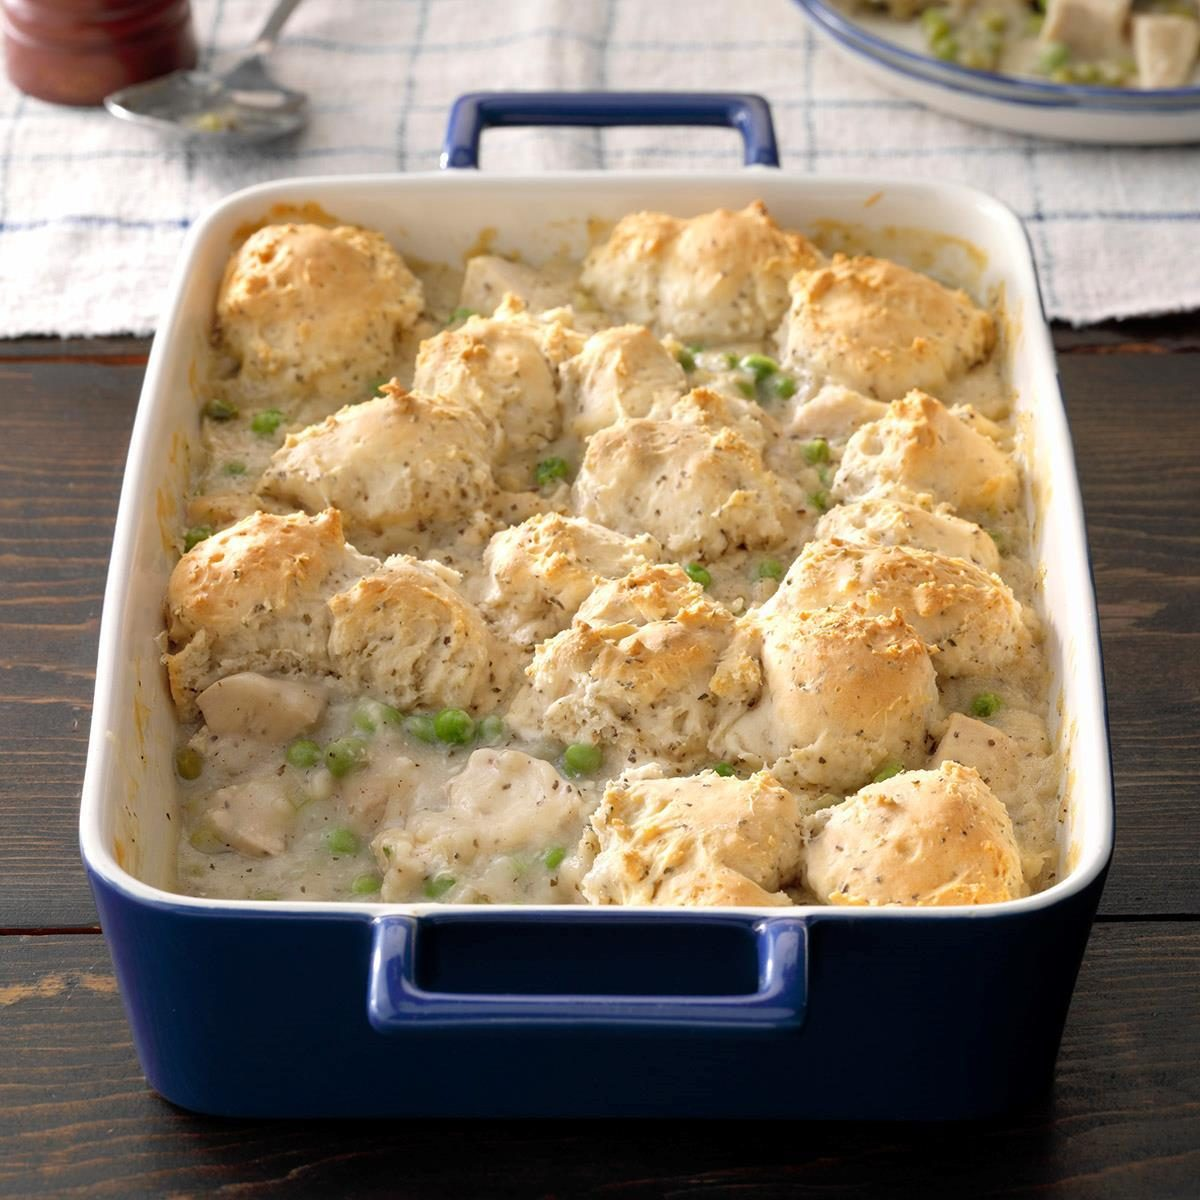 Sunday: Chicken & Dumpling Casserole